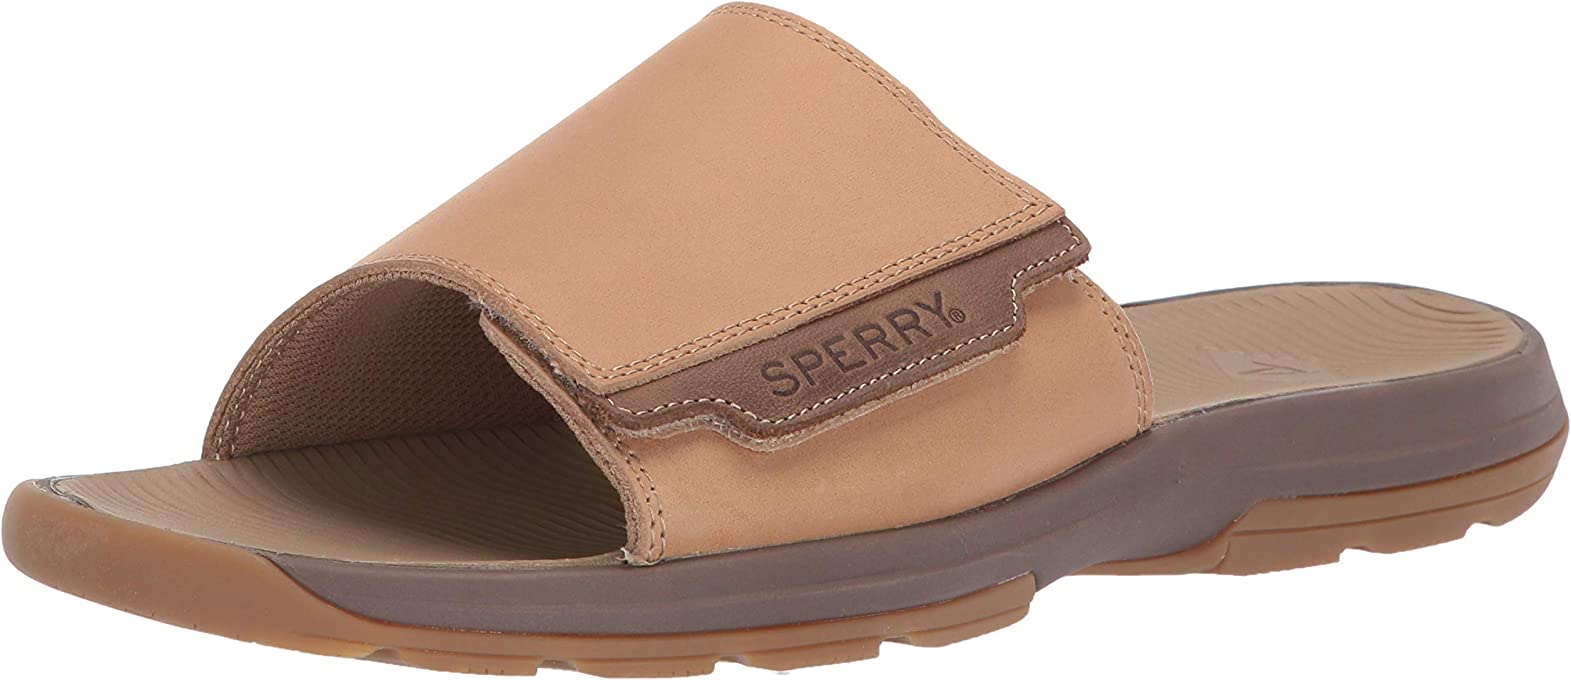 Sperry Mens Whitecap Slide Sandals